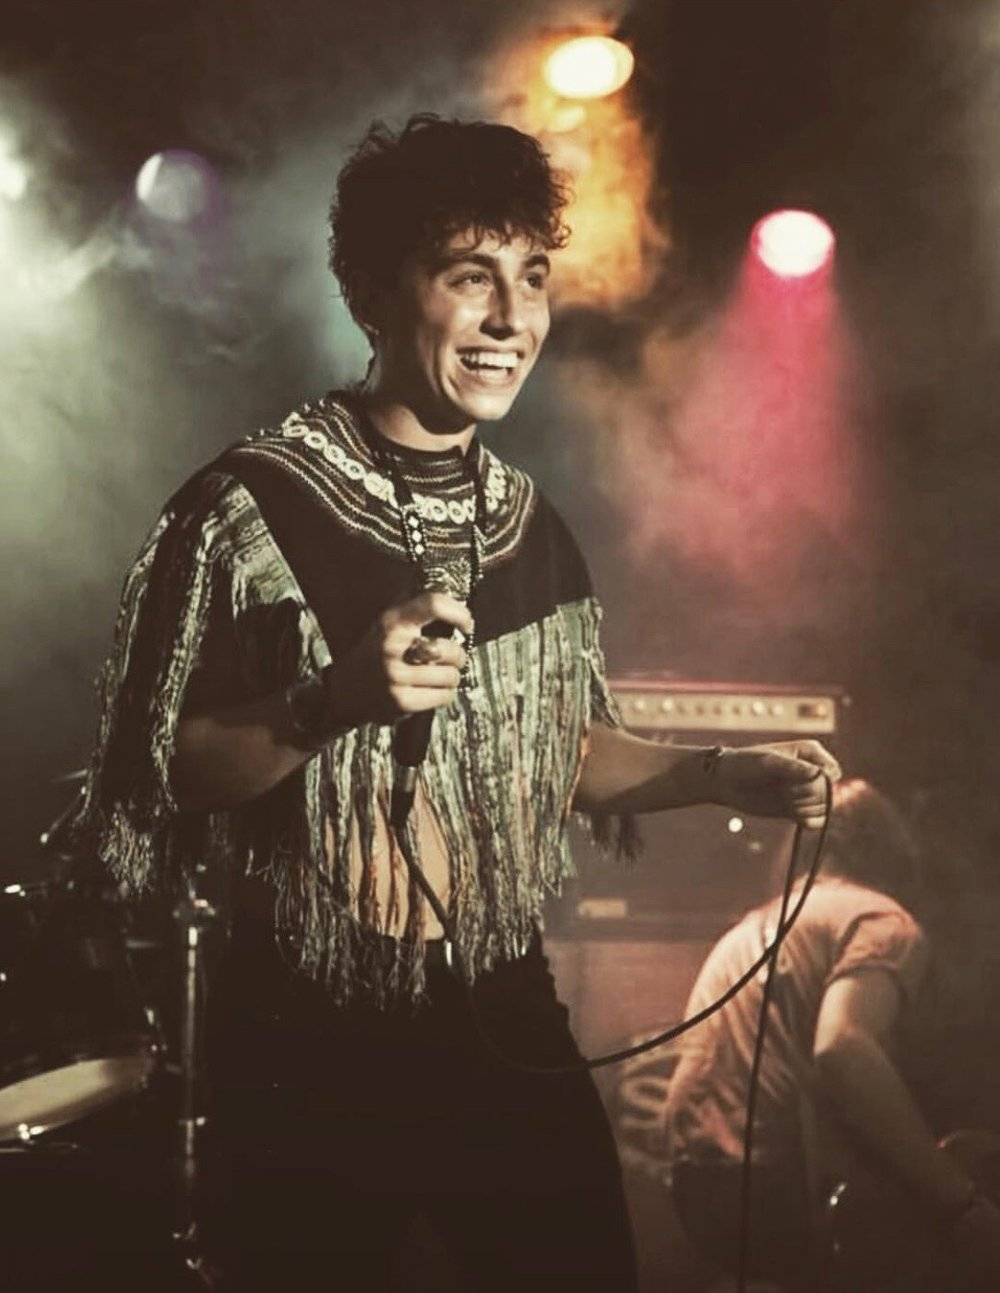 Josh Kiska of Greta Van Fleet wearing my custom design